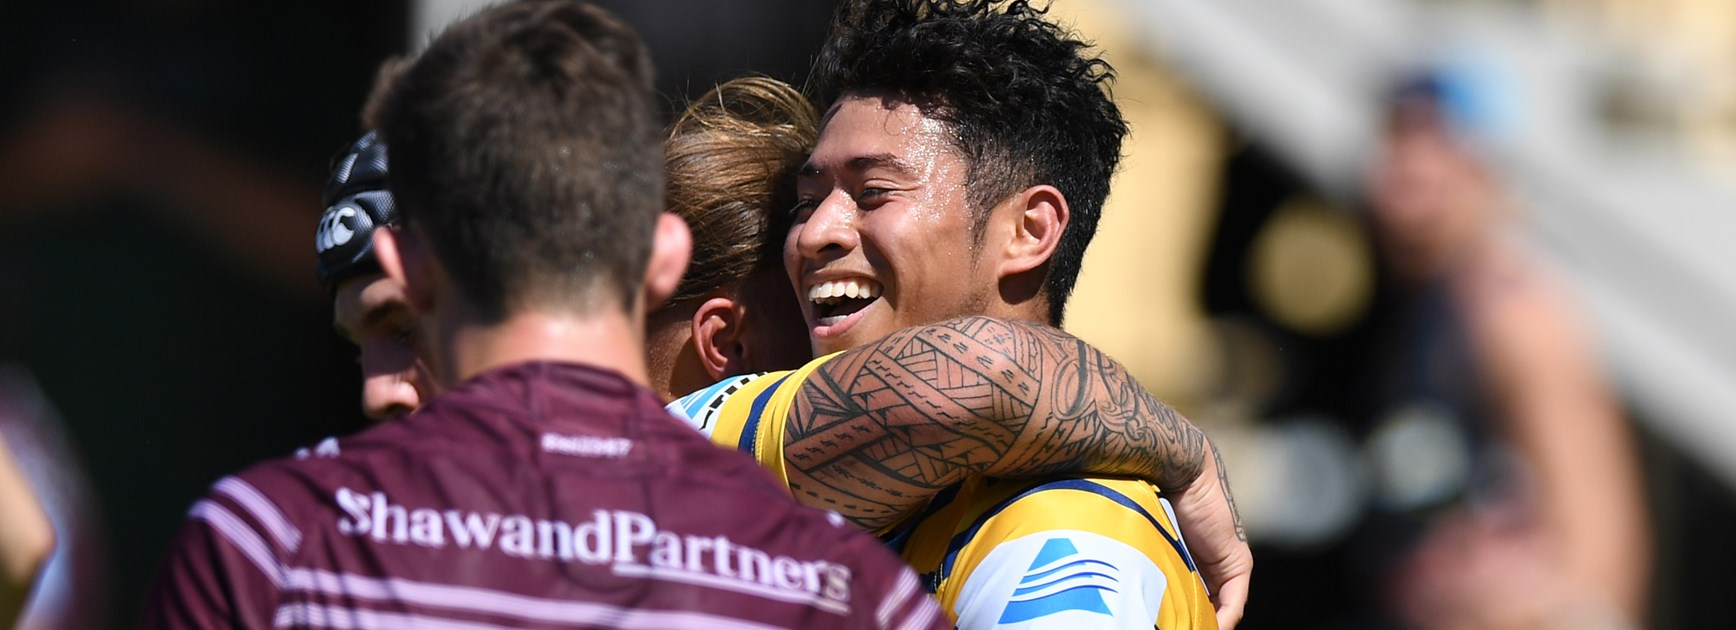 Eels Jersey Flegg dominate Sea Eagles at Lottoland